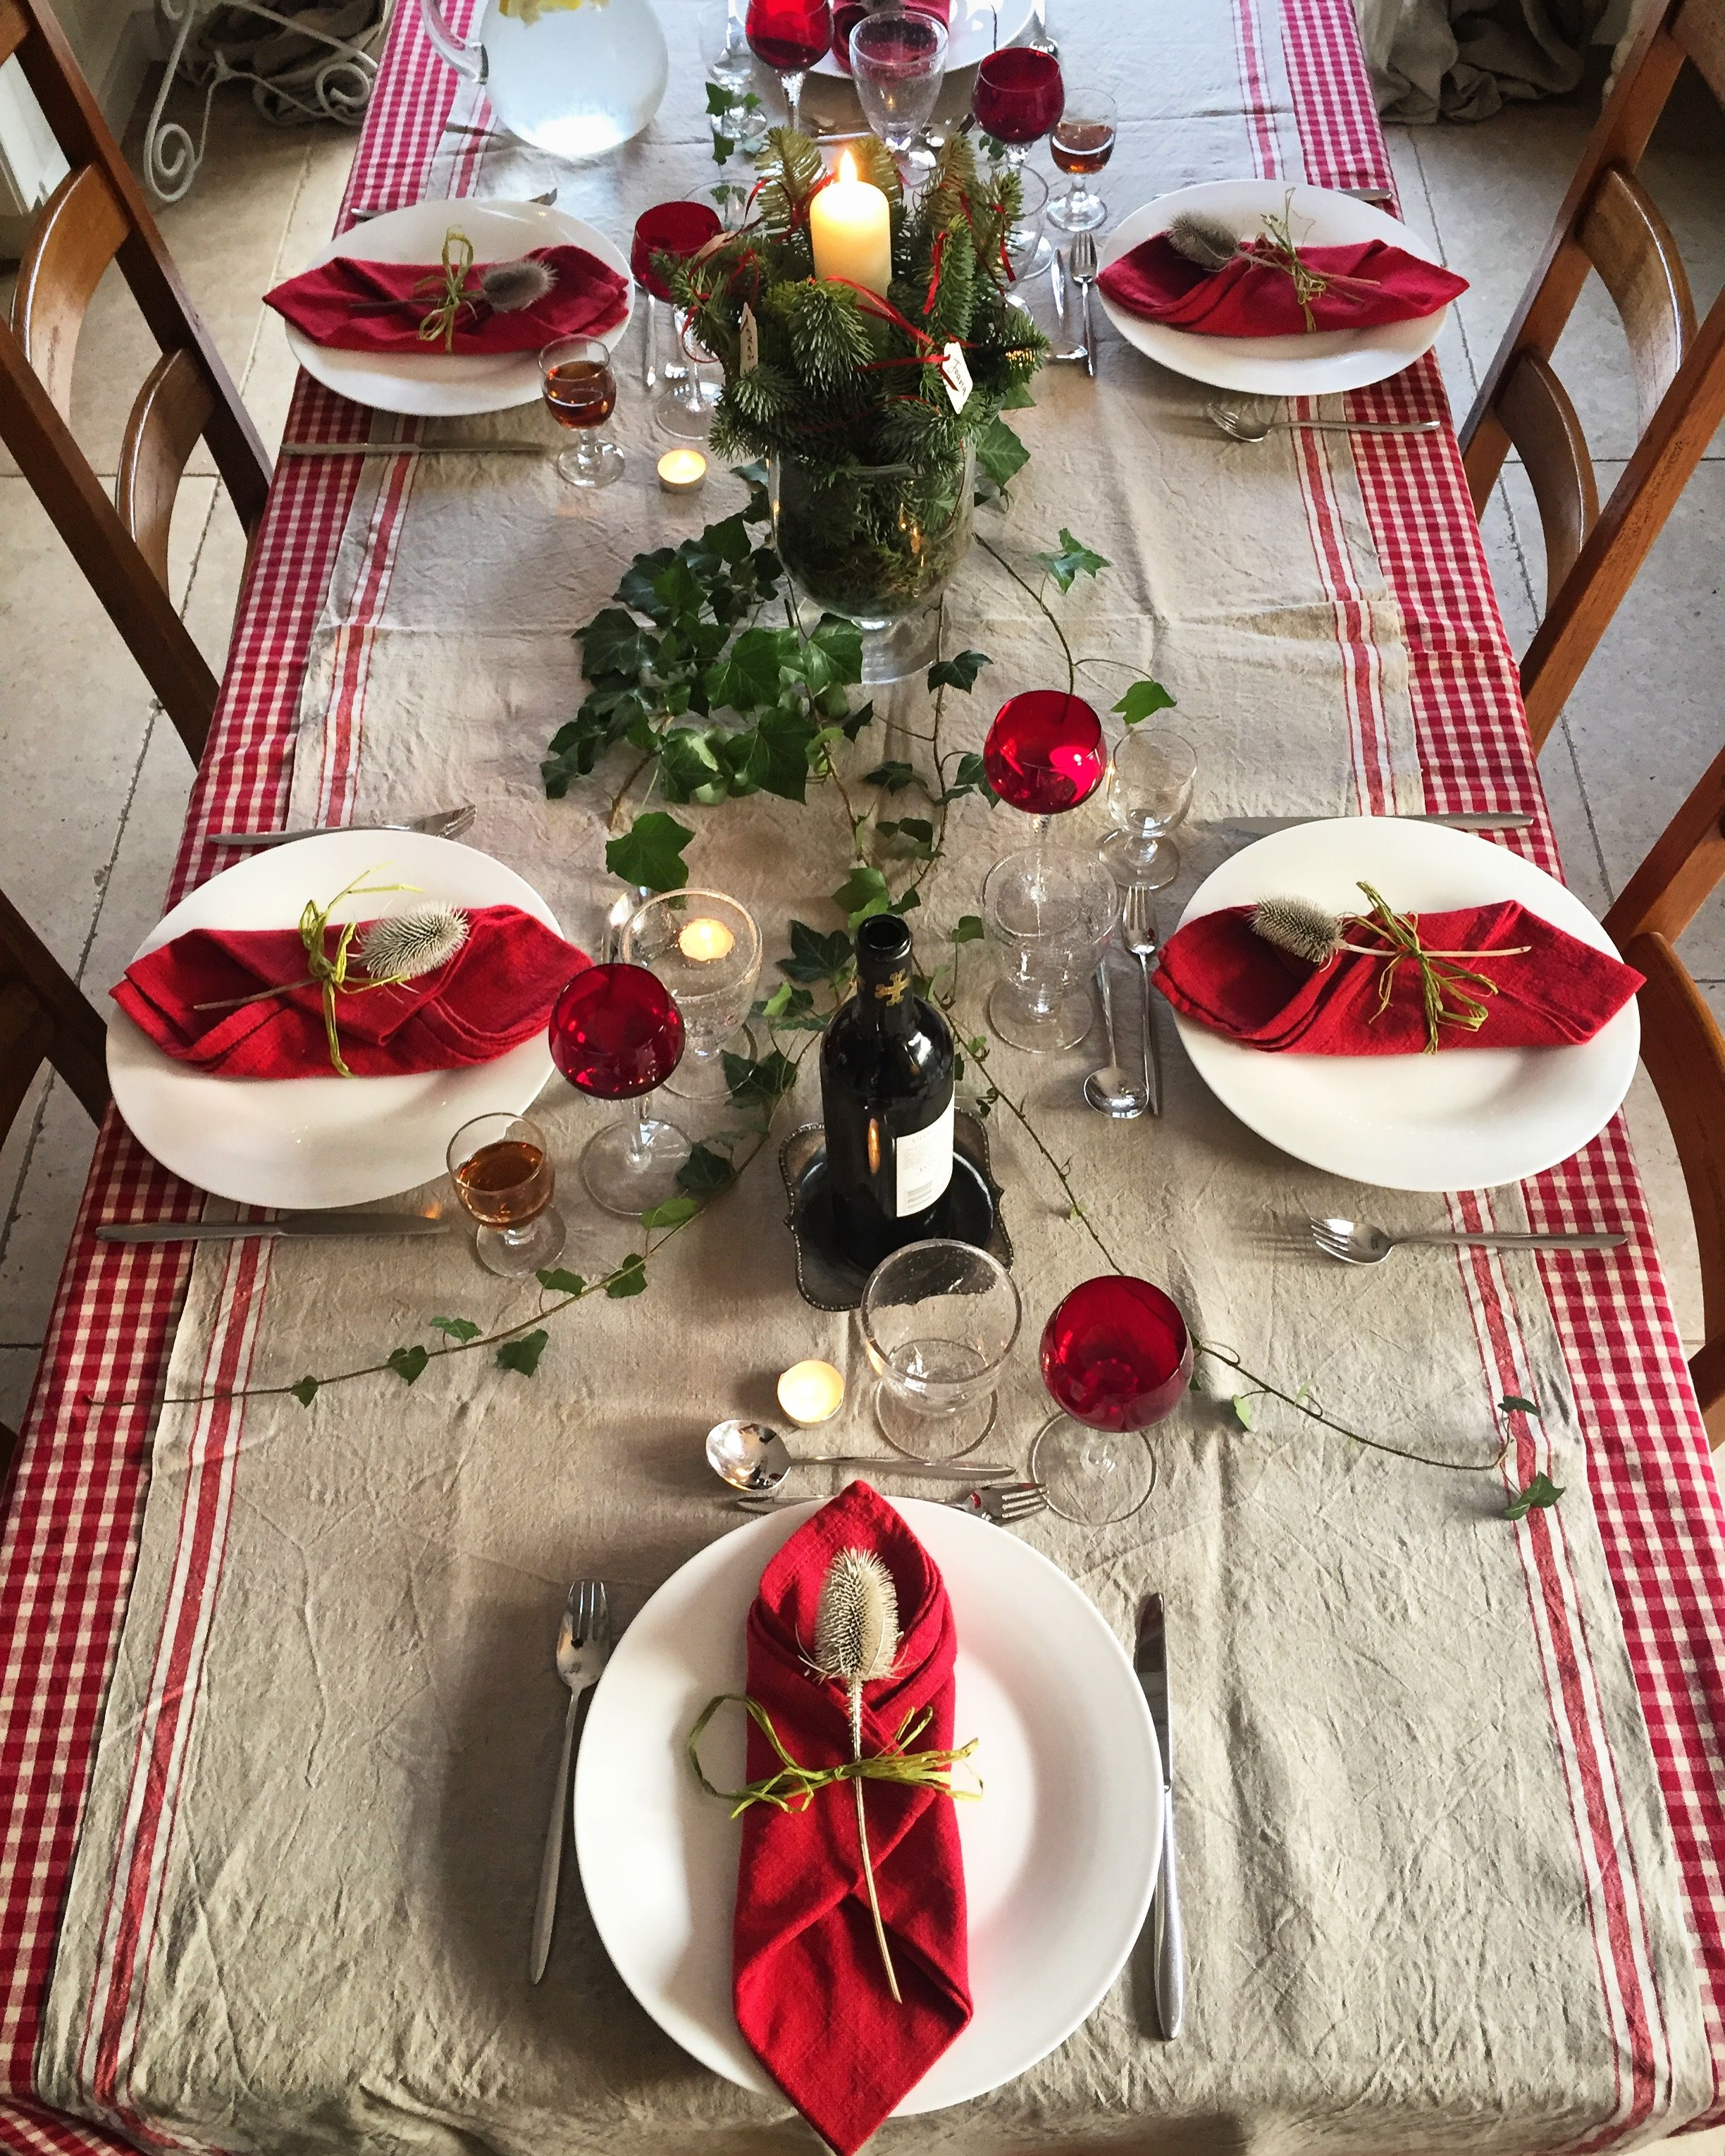 Christmas Table Setting Red And White With A Splash Of Green Christmas Table Settings Christmas Table Decorations Table Settings